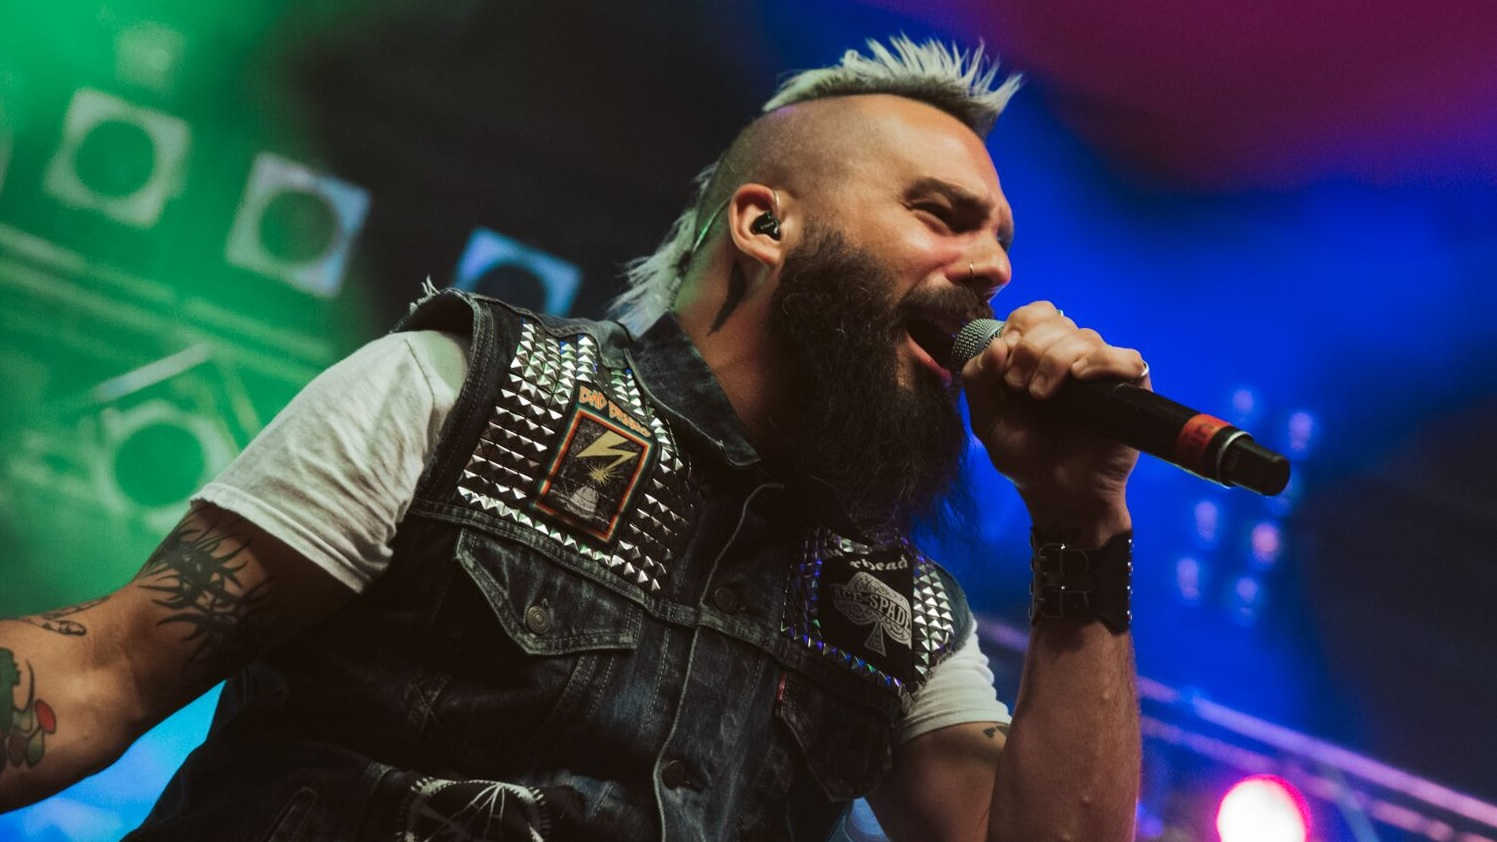 Killswitch Engage Jesse Leach The Weapon